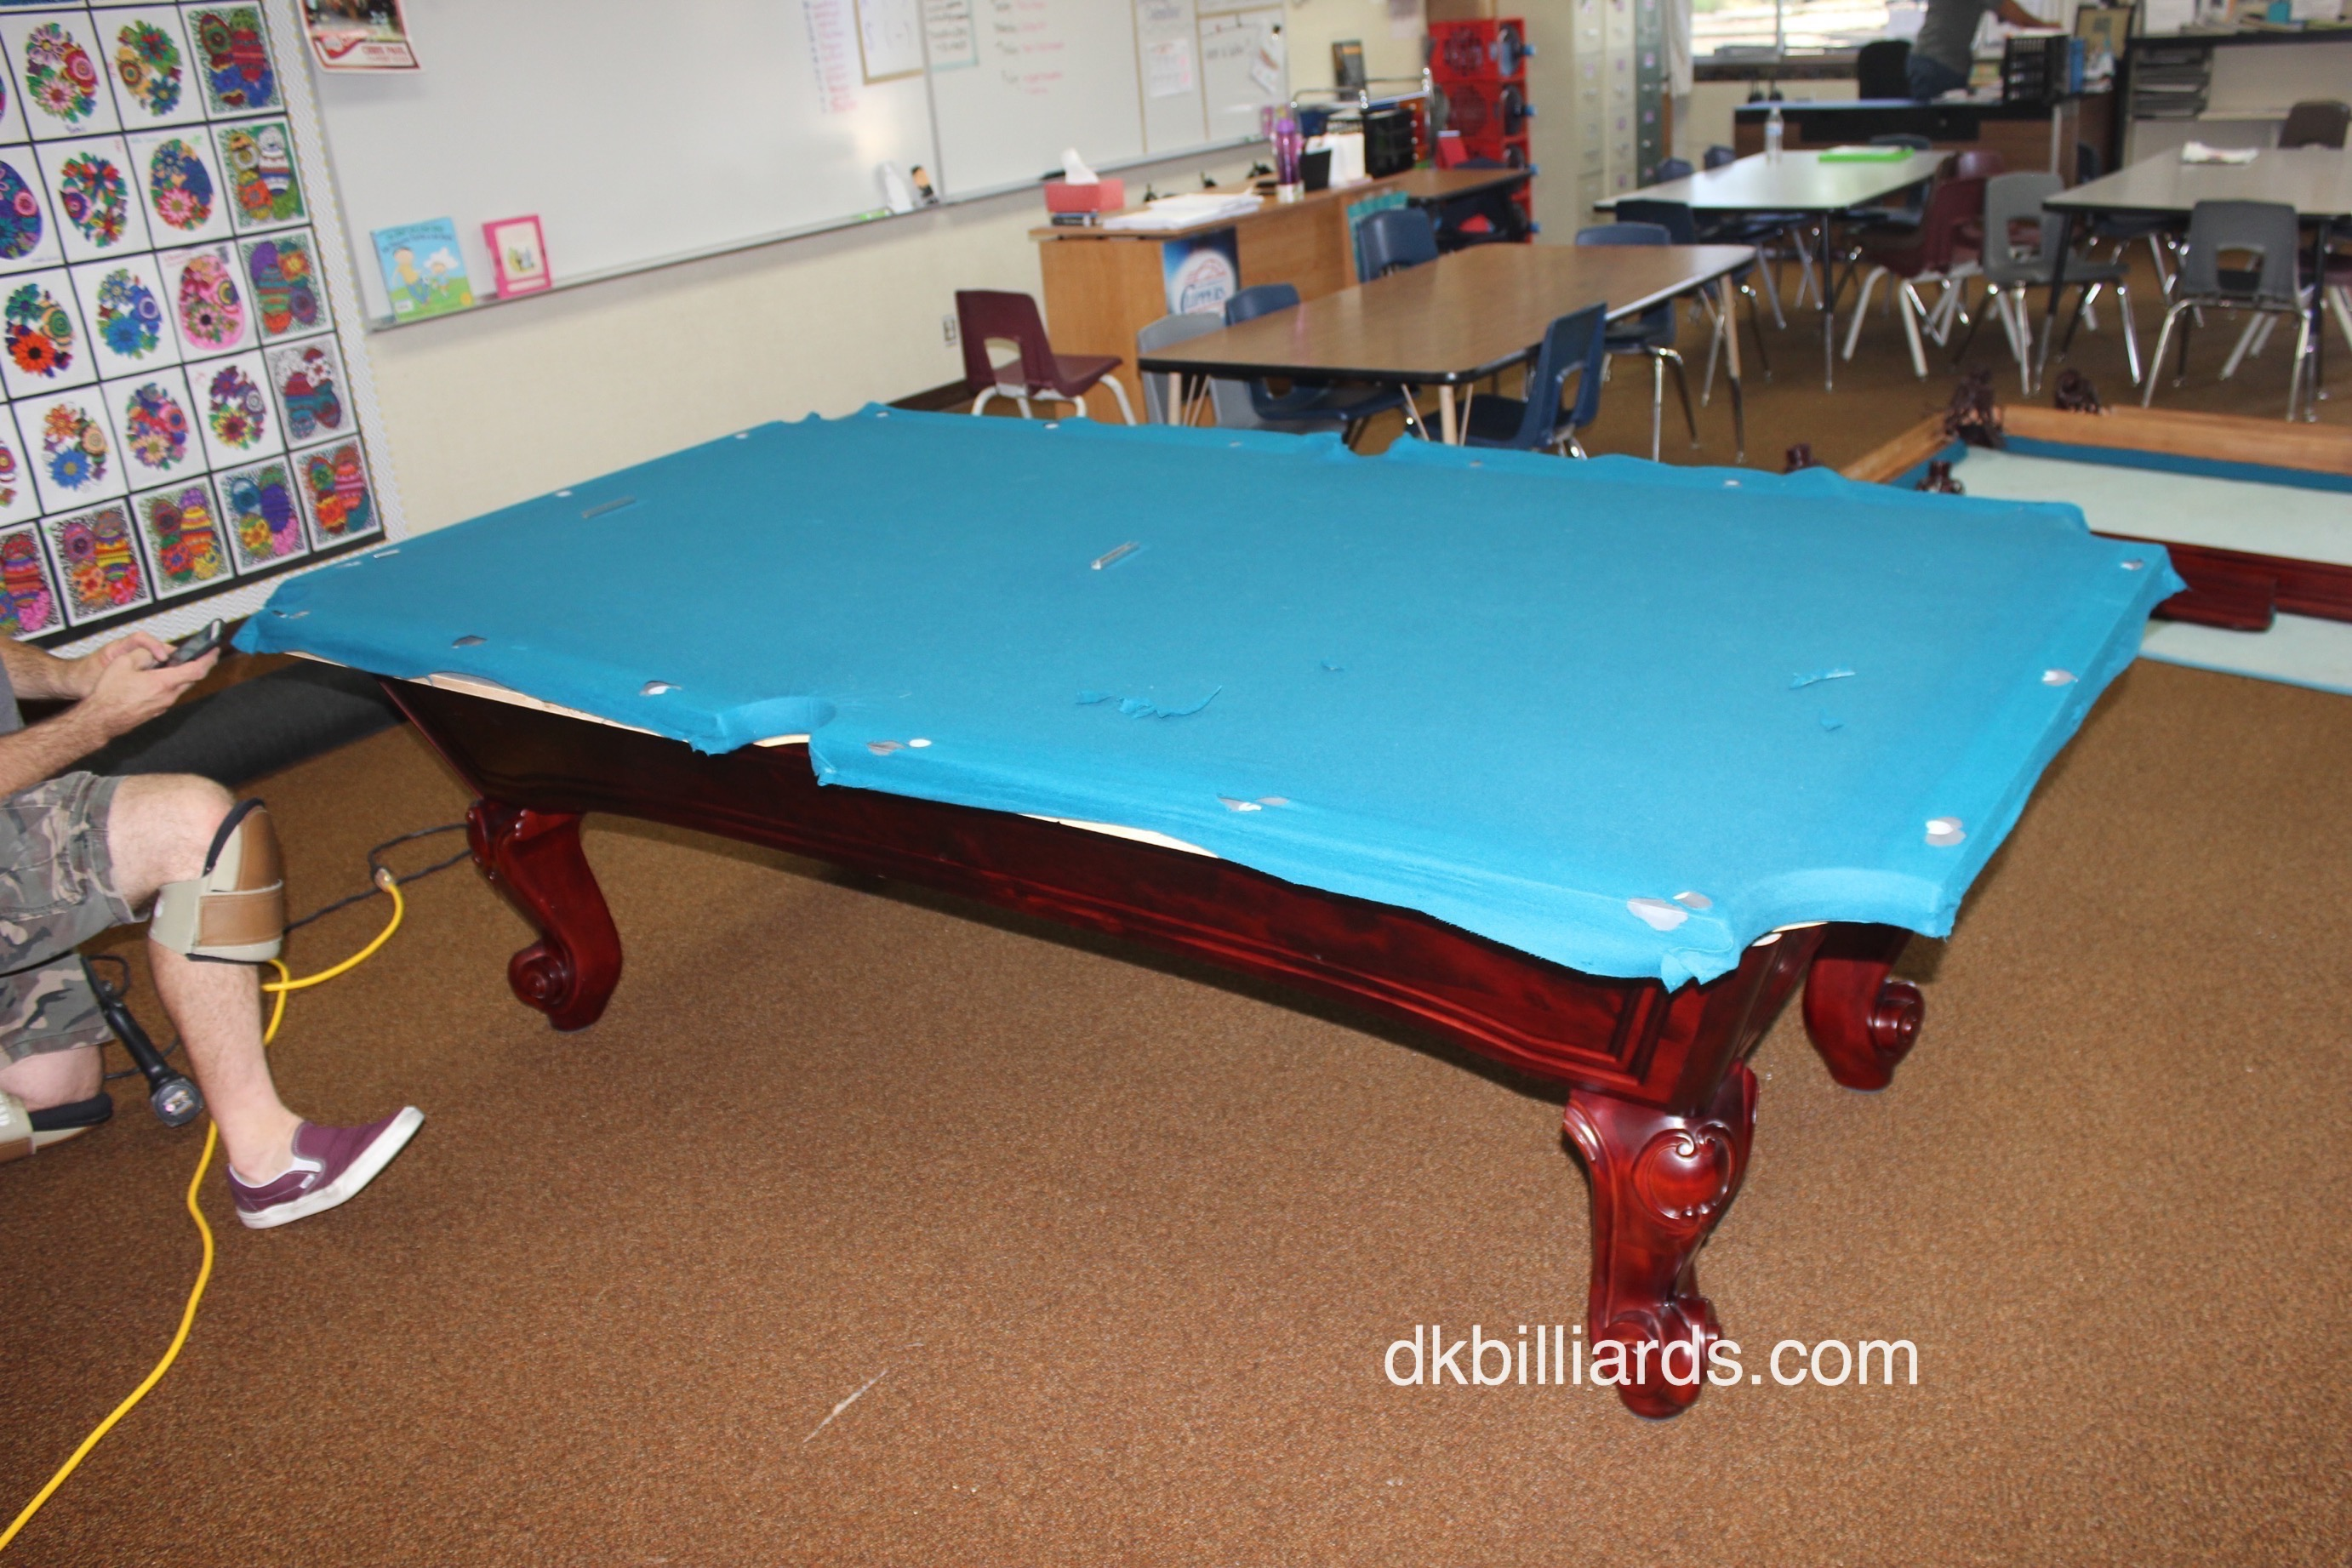 Donating Your Pool Table Is A Great Way To Give Back To The Community And  Can Likely Be A Deduction On Your Taxes. If You Are Interested In Giving  Your Pool ...